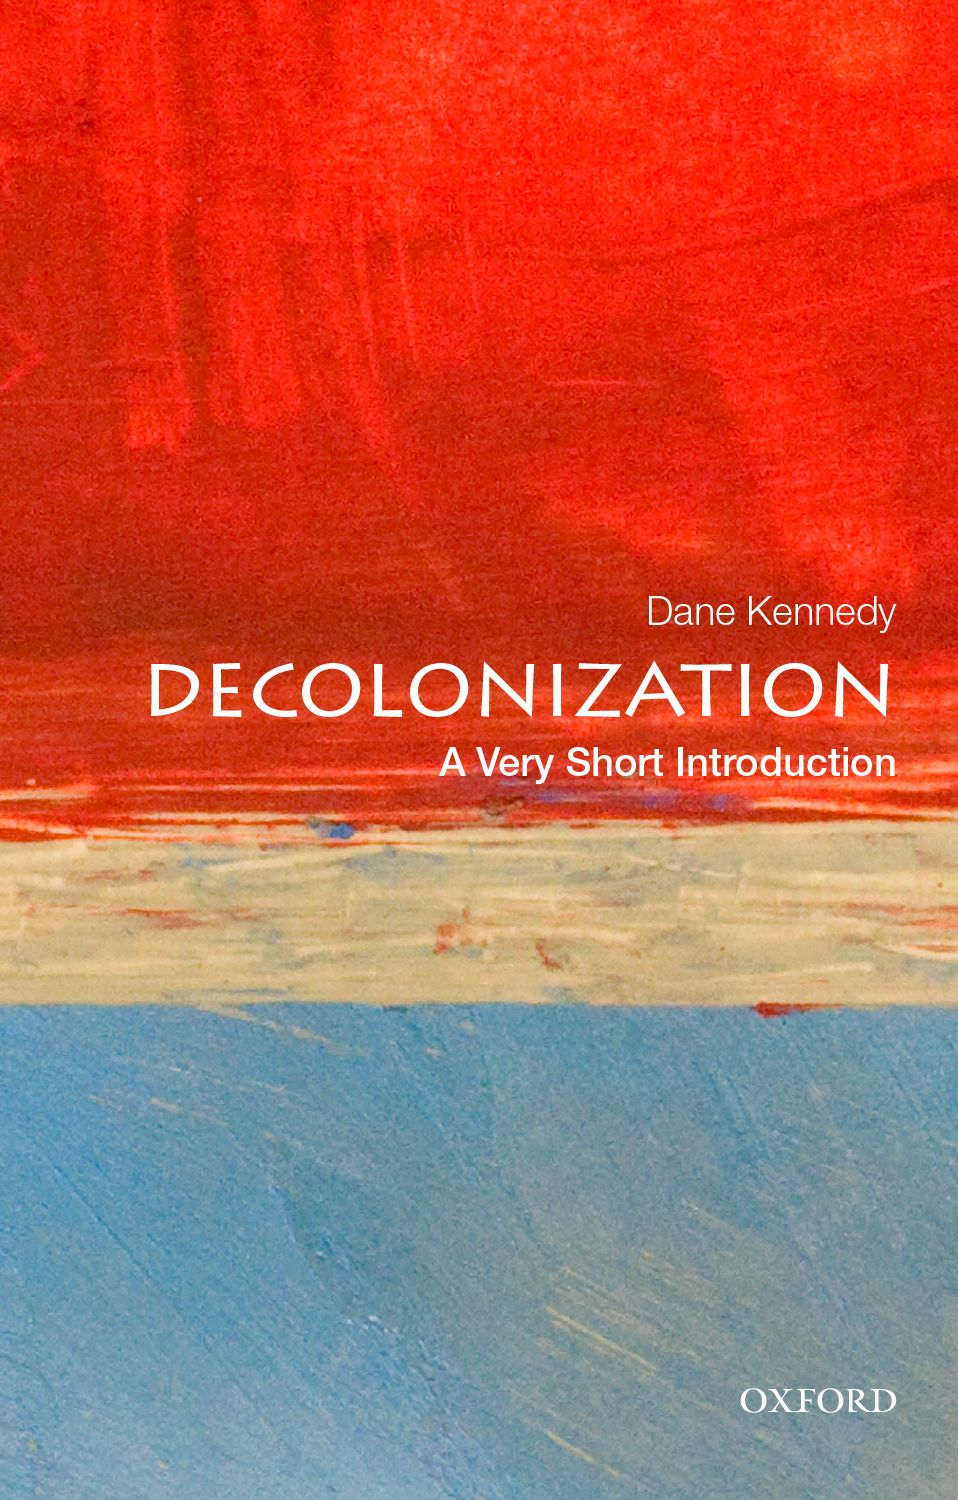 Decolonization: A Very Short Introduction. By Dane Kennedy